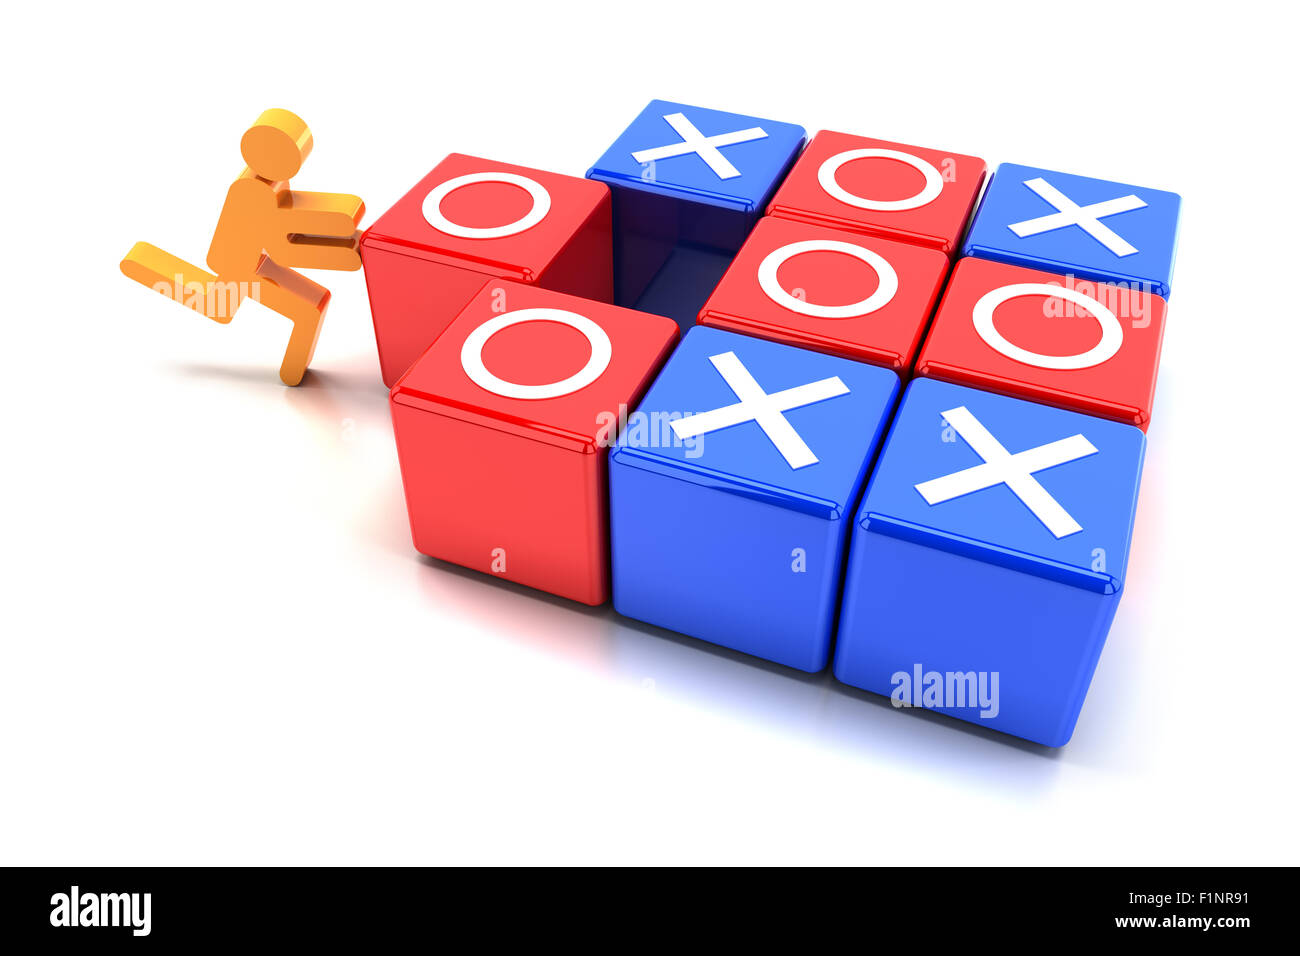 Tic tac toe game - Stock Image